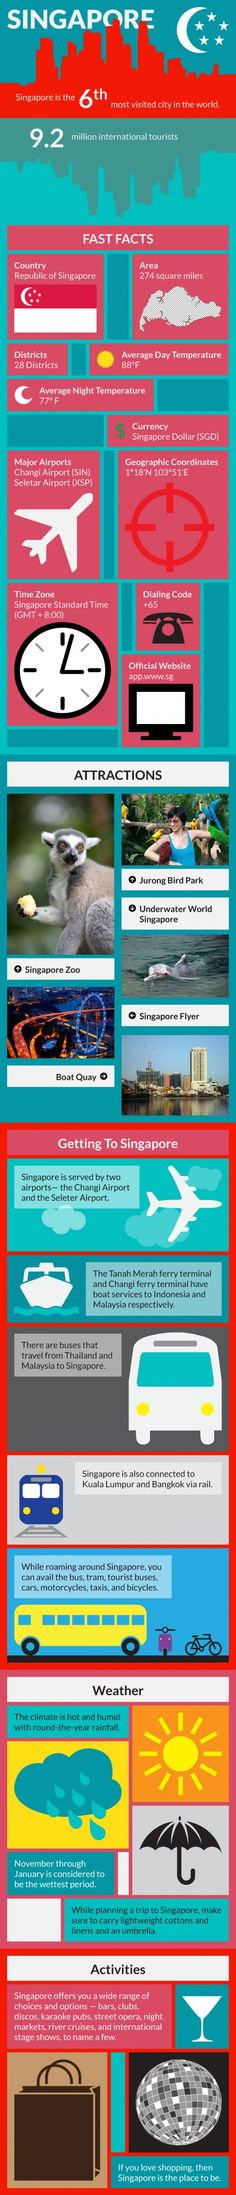 Singapore Infographic  The more interesting post are waiting for you on www.tripsingapore.com